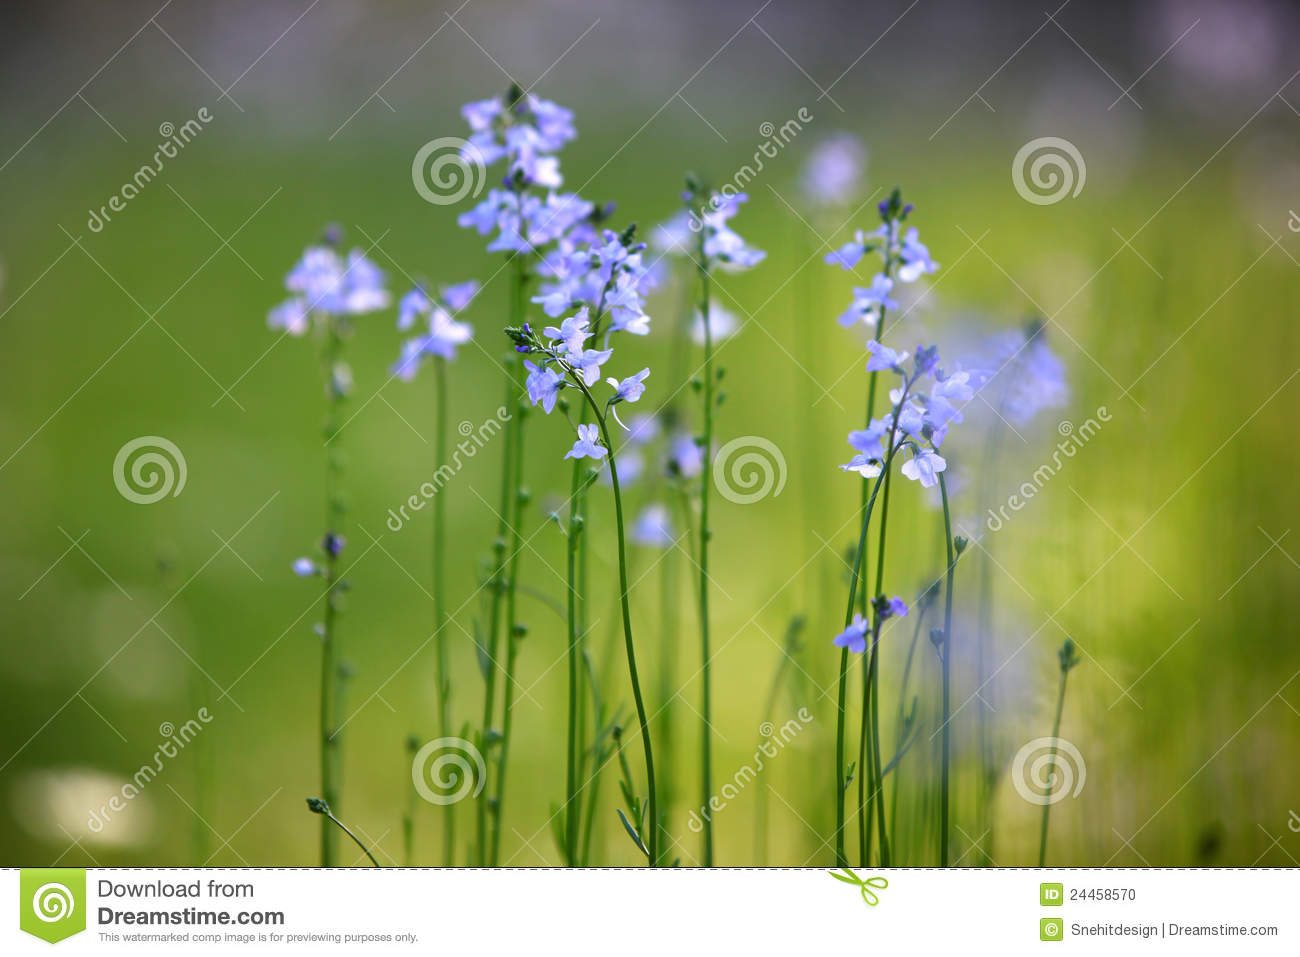 Tall Grass With Tiny Purple Flowers Stock Photo Image Of Blue